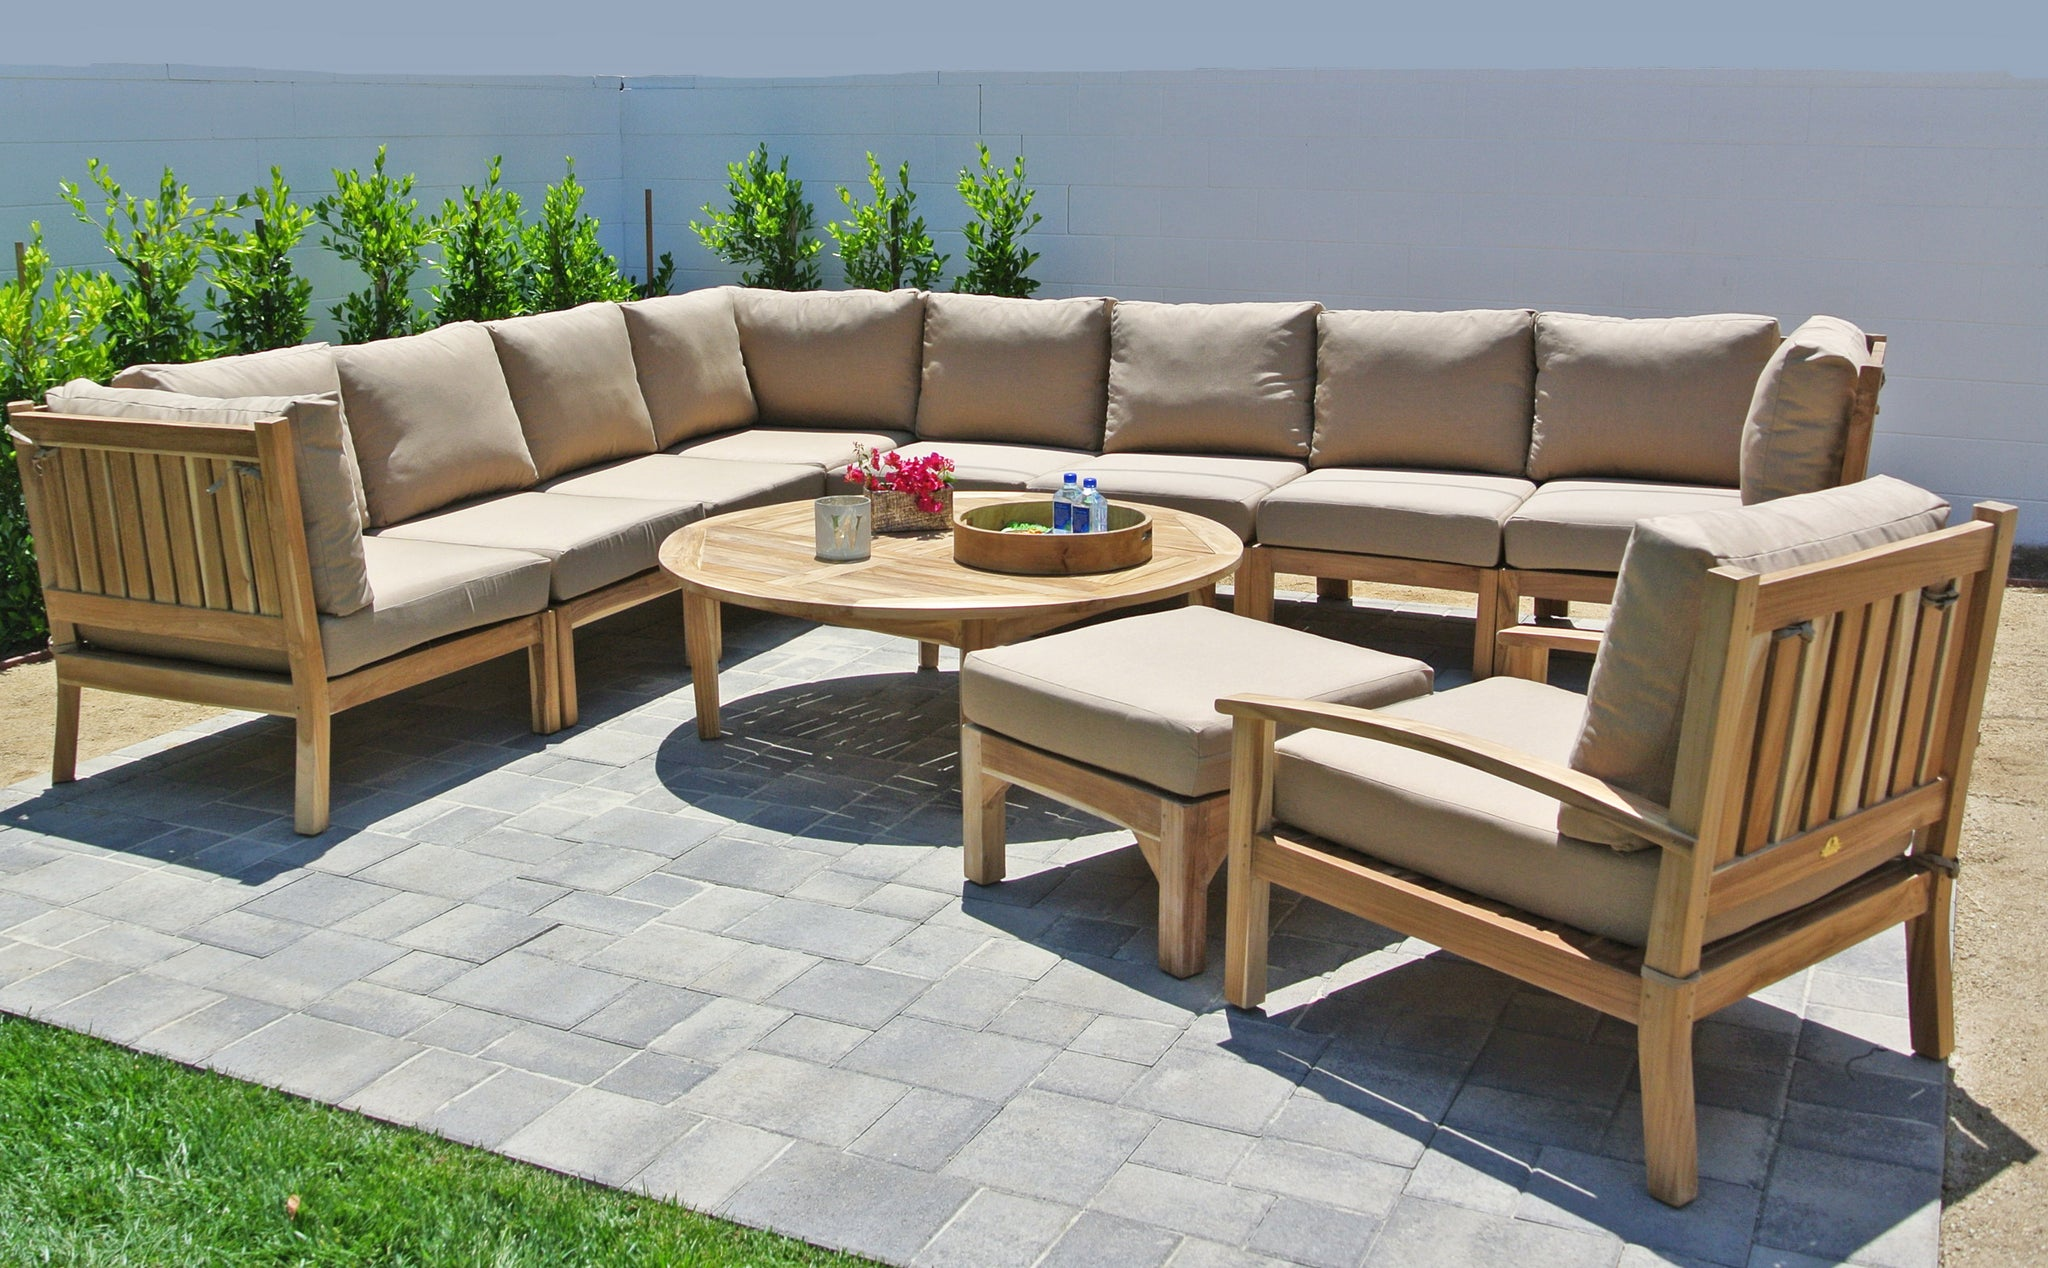 Teak Outdoor Sectional Modular Outdoor Patio Furniture